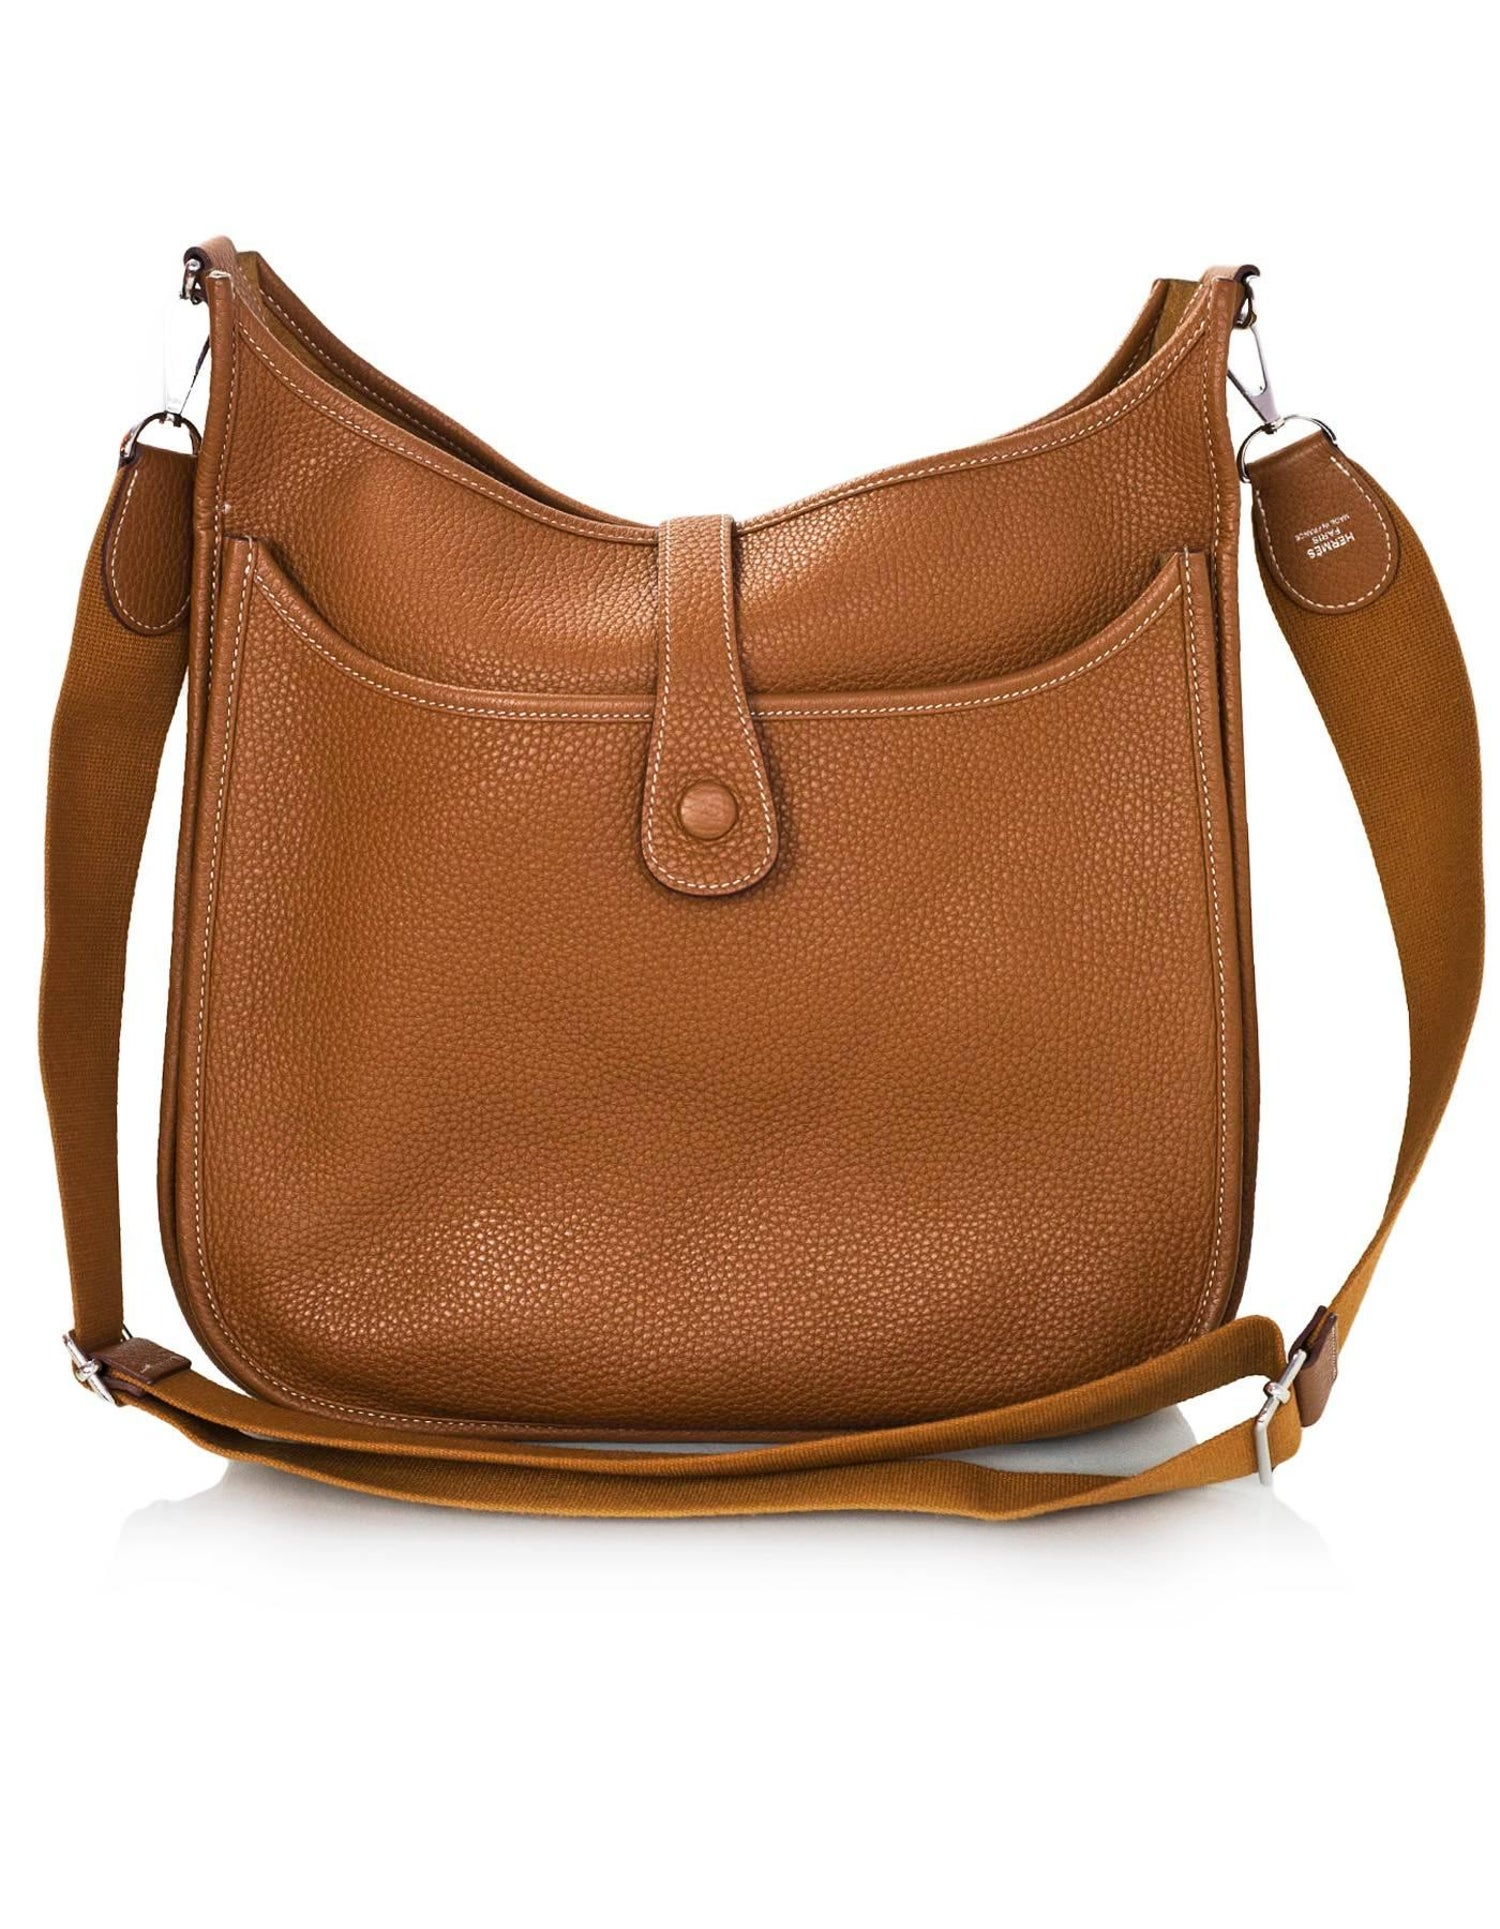 425ffa1a4c65 Hermes Tan Gold Clemence Leather Evelyne III GM Messenger Bag For Sale at  1stdibs